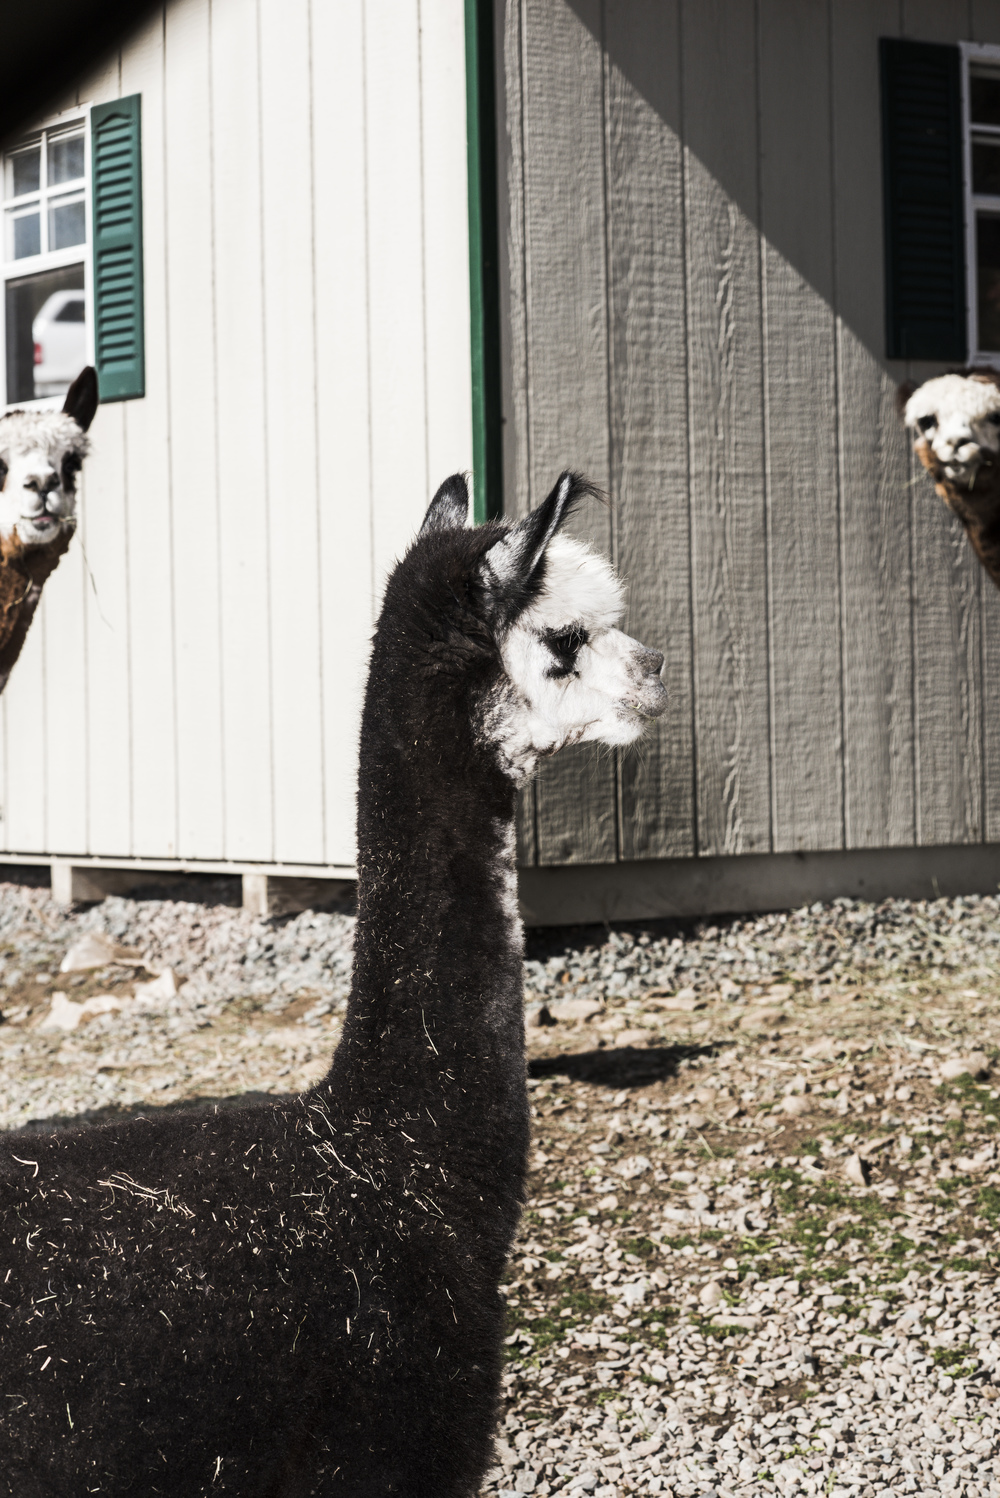 Imagine_Alpacas_eddie_adams_workshop_2015 (7 of 11).jpg